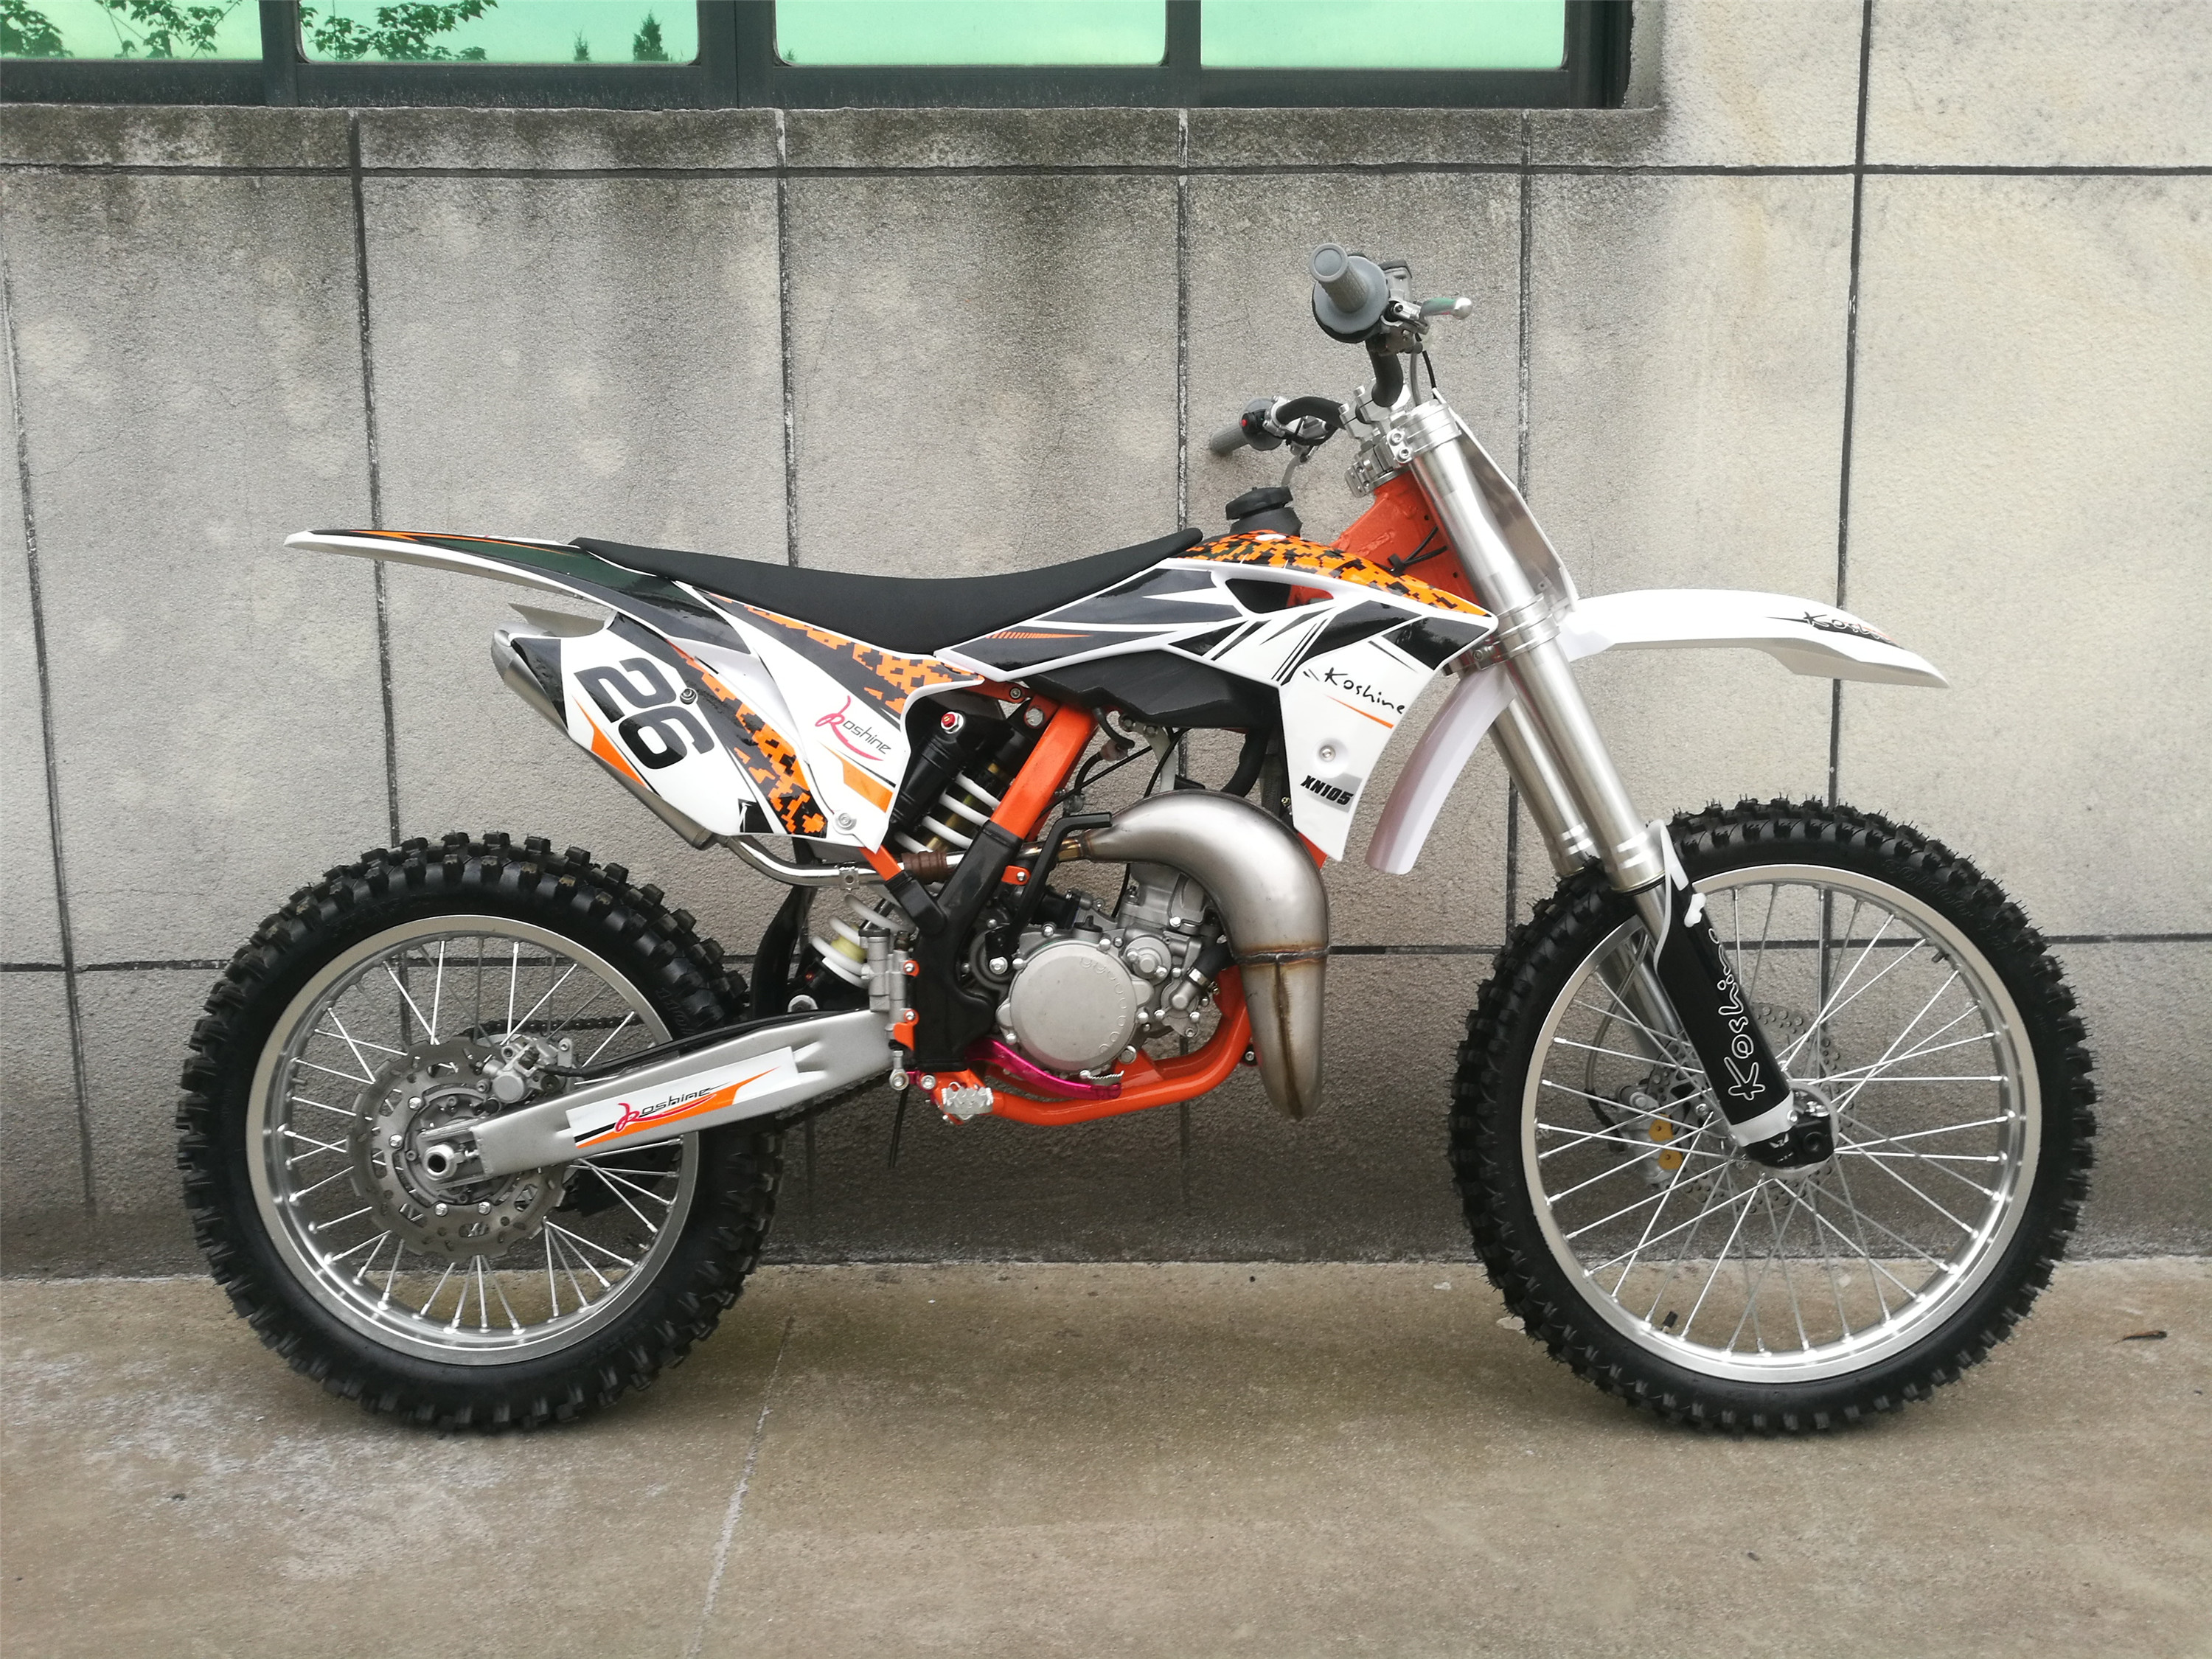 105CC Big Power Dirt Bike XN105